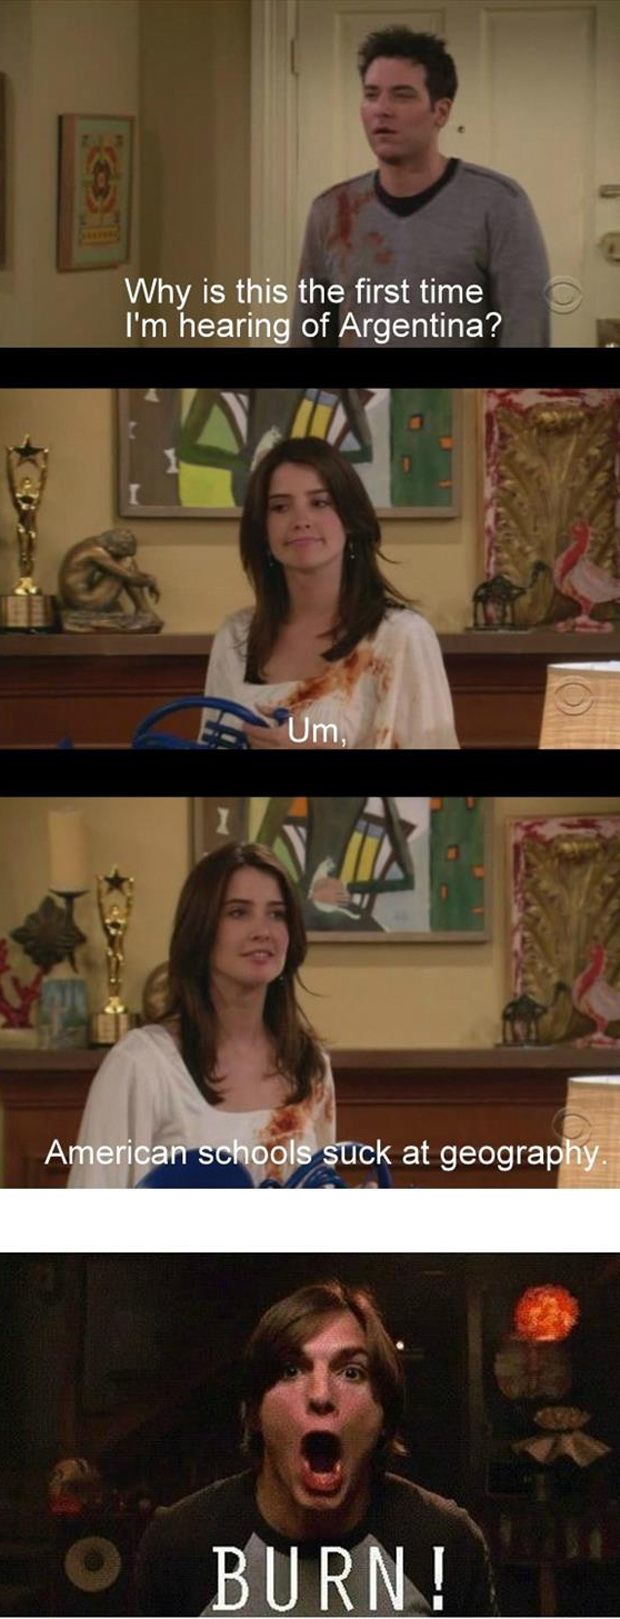 the american school system how I met your mother